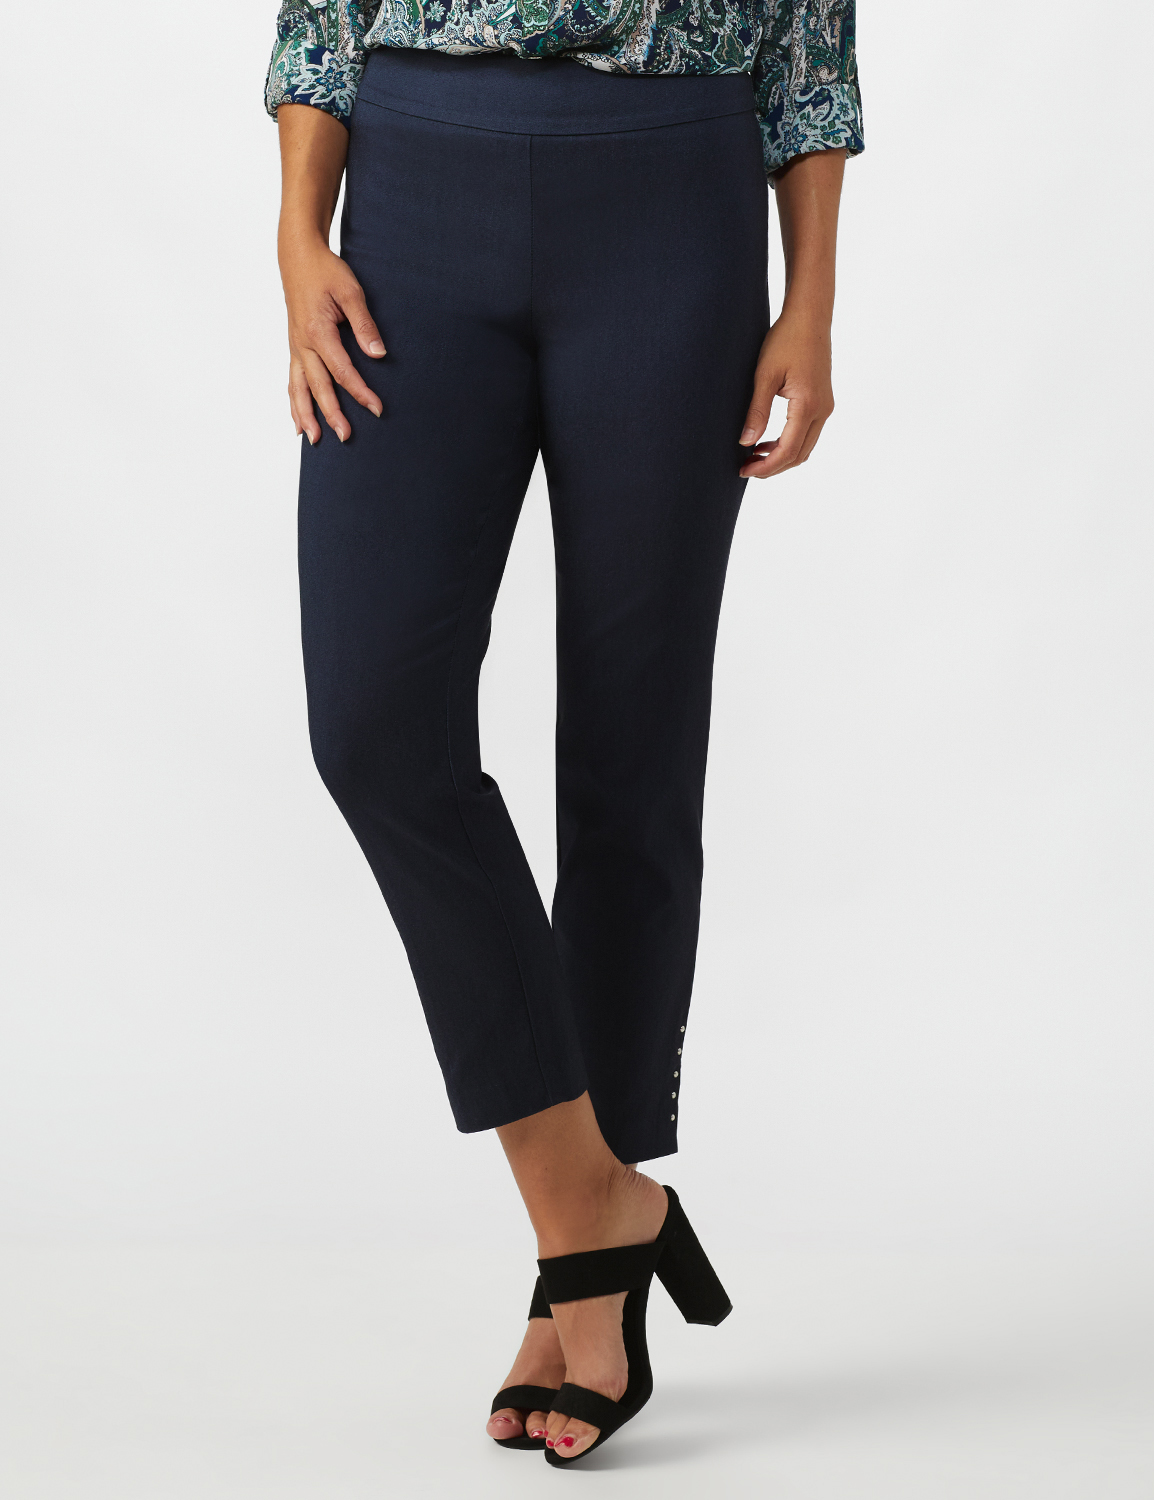 Roz & Ali Solid Superstretch Tummy Panel Pull On Ankle Pants With Rivet Trim Bottom - Misses -Dark Denim - Front